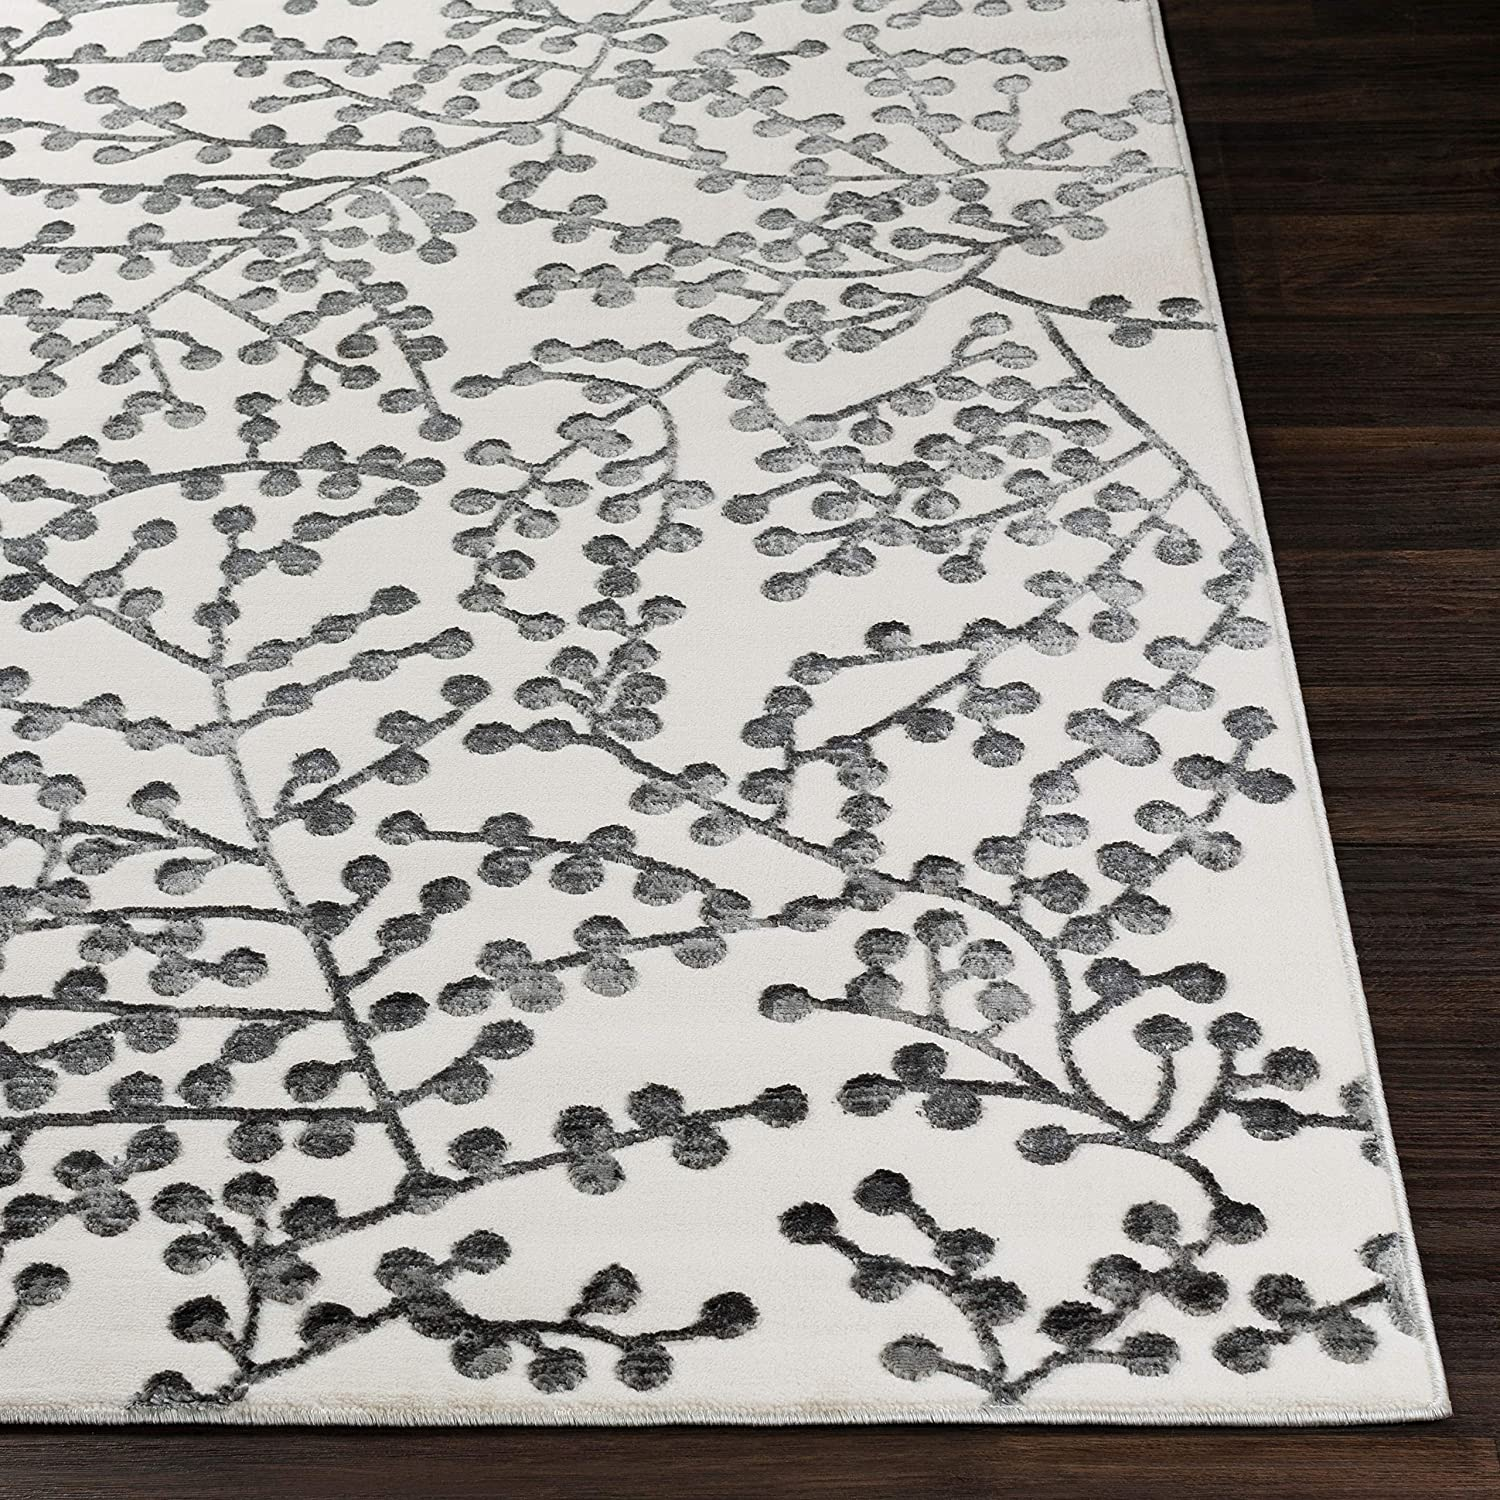 "UKN White Grey Branches Area Rug 5'3"" X 7'3"" Abstract Geometric Transitional Rectangle Polyester Synthetic Latex Free Pet Friendly Stain Resistant"